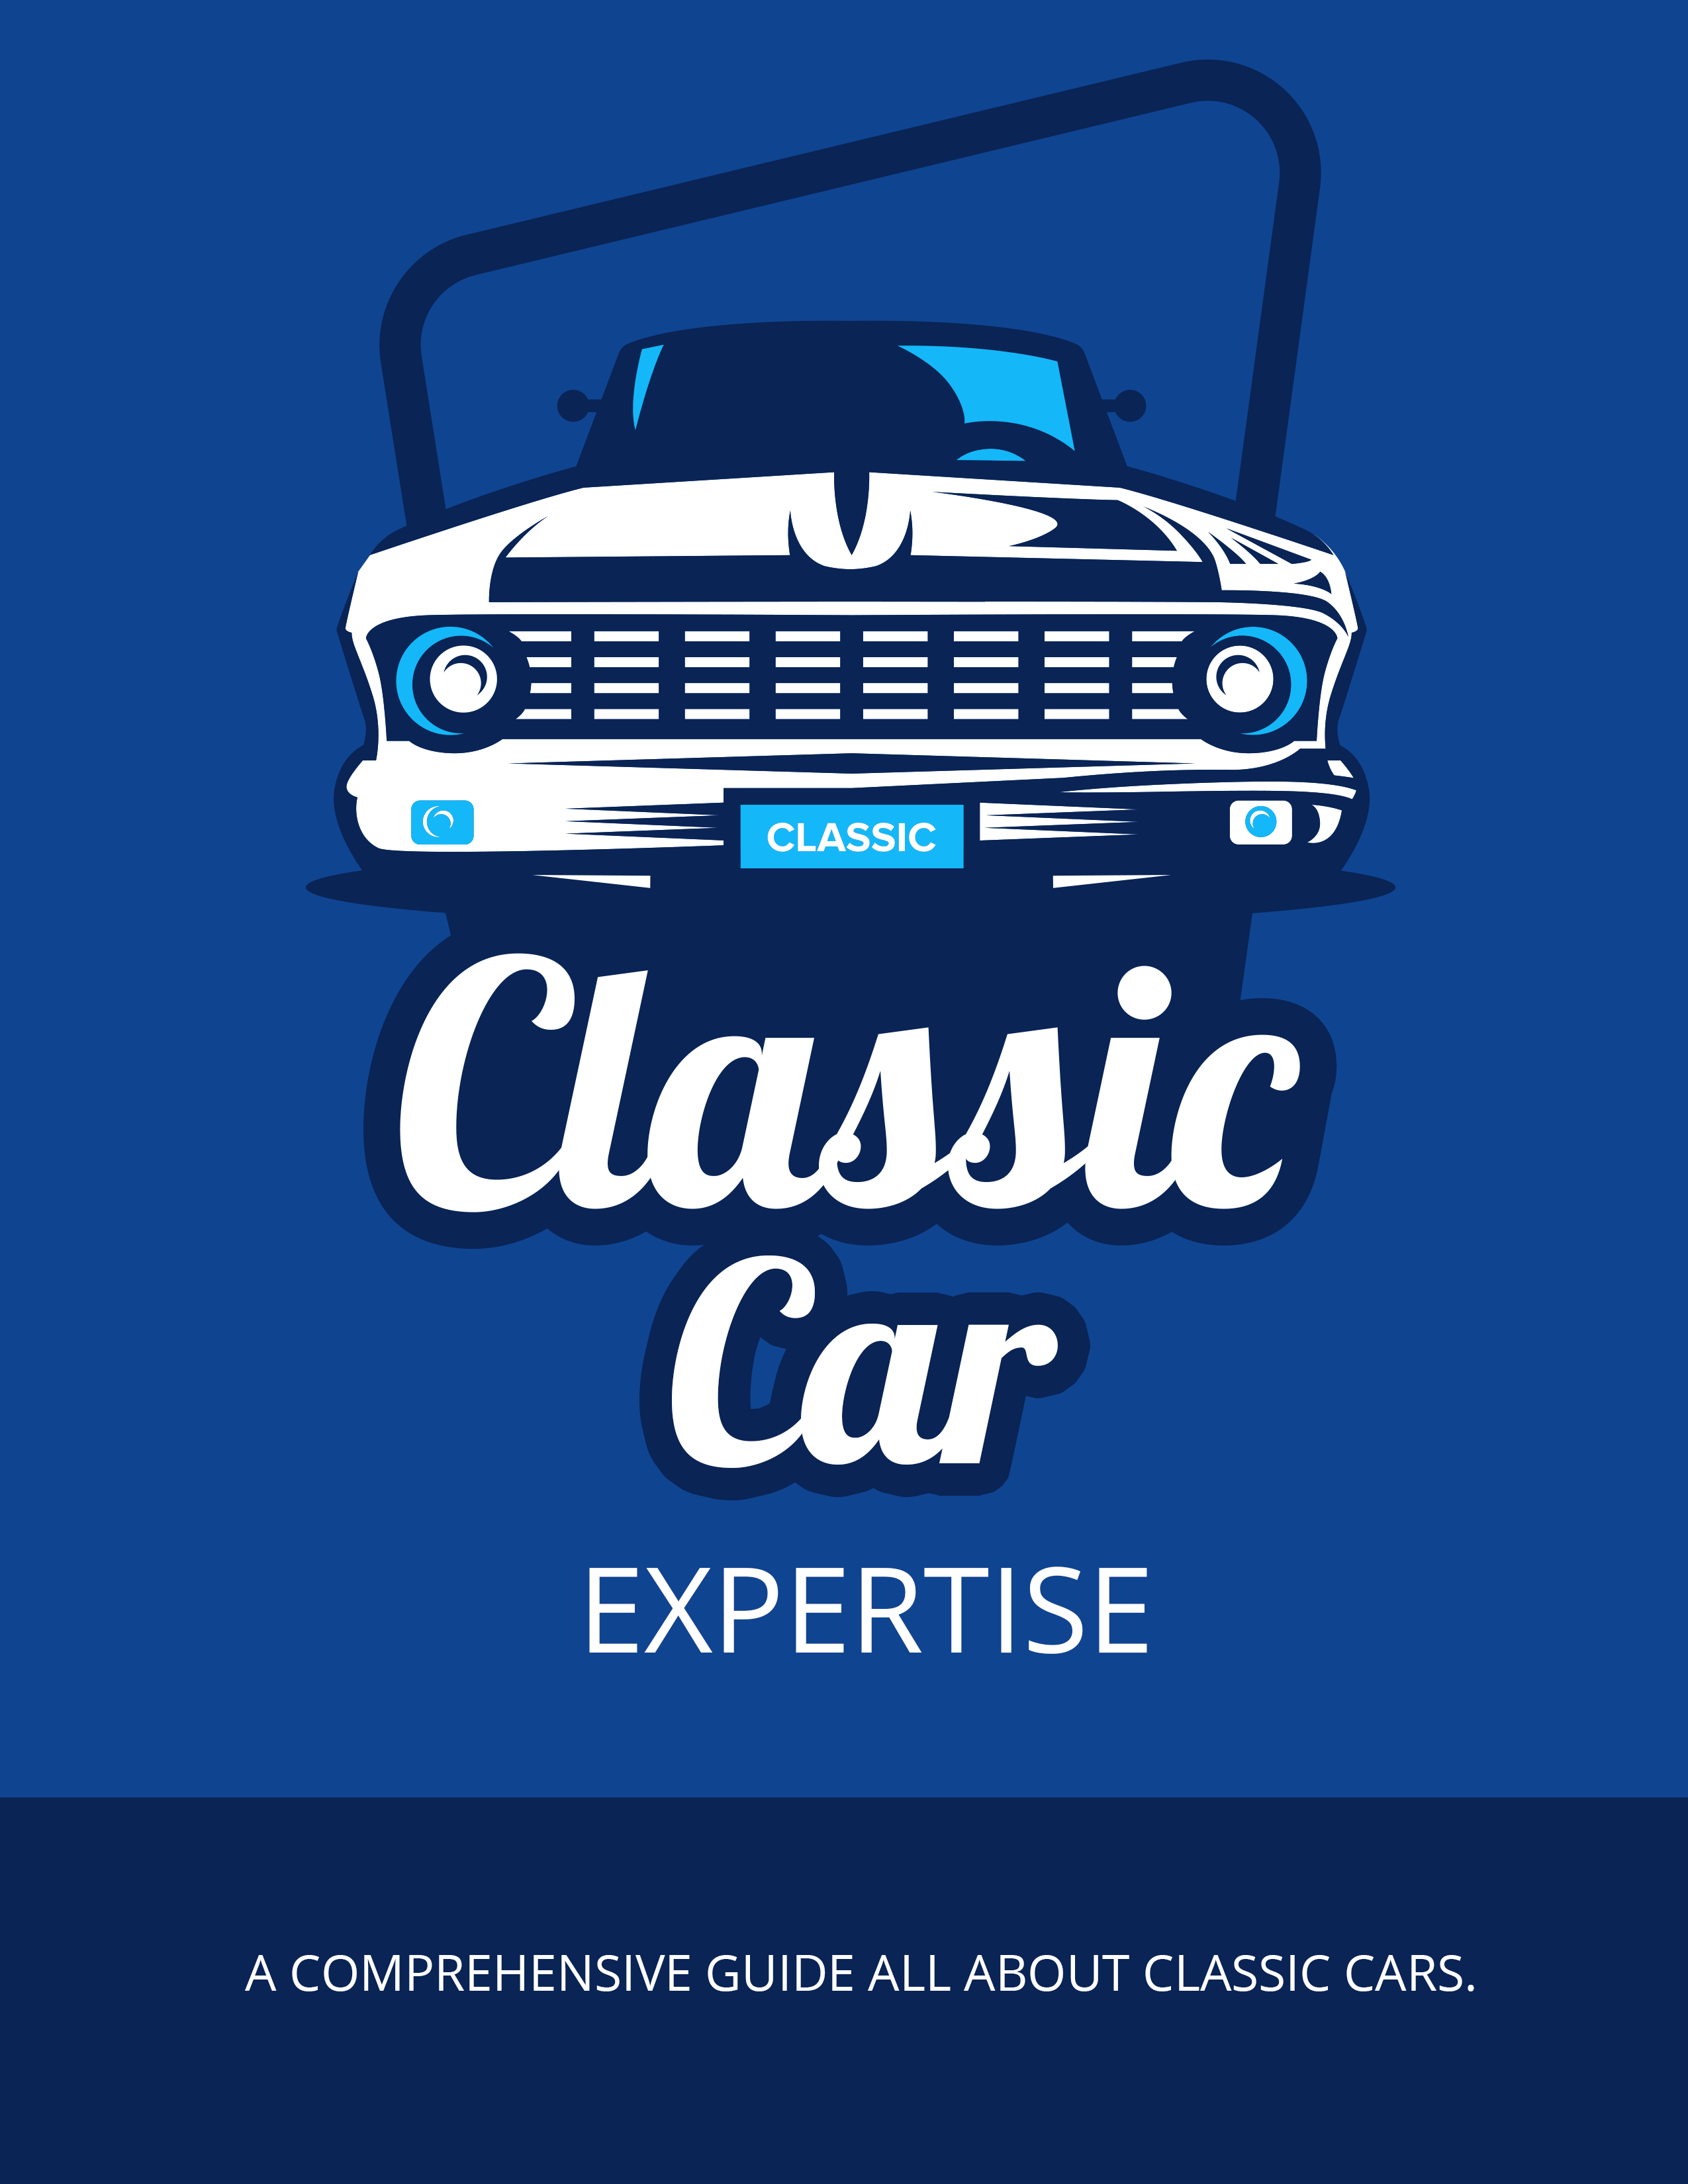 Classic Car Expertise (A Comprehensive Guide All About Classic Cars.) Ebook's Book Image